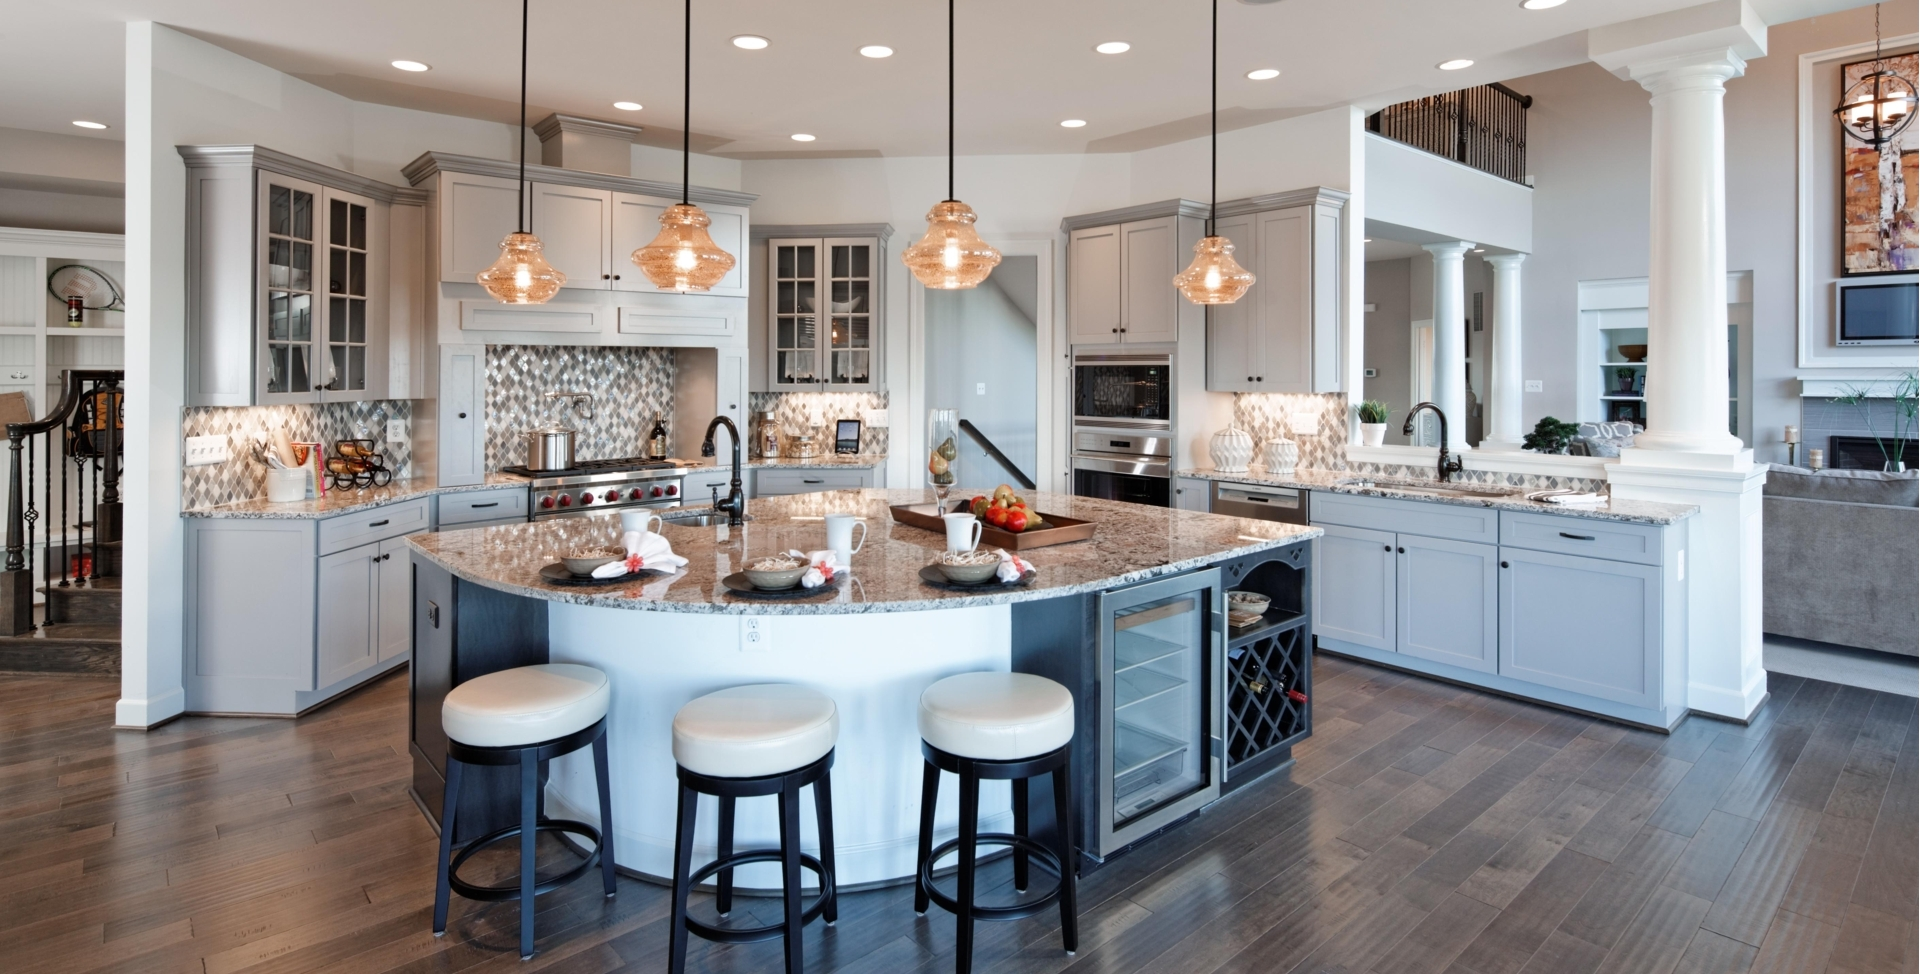 Venezia Model Home Gourmet Kitchen